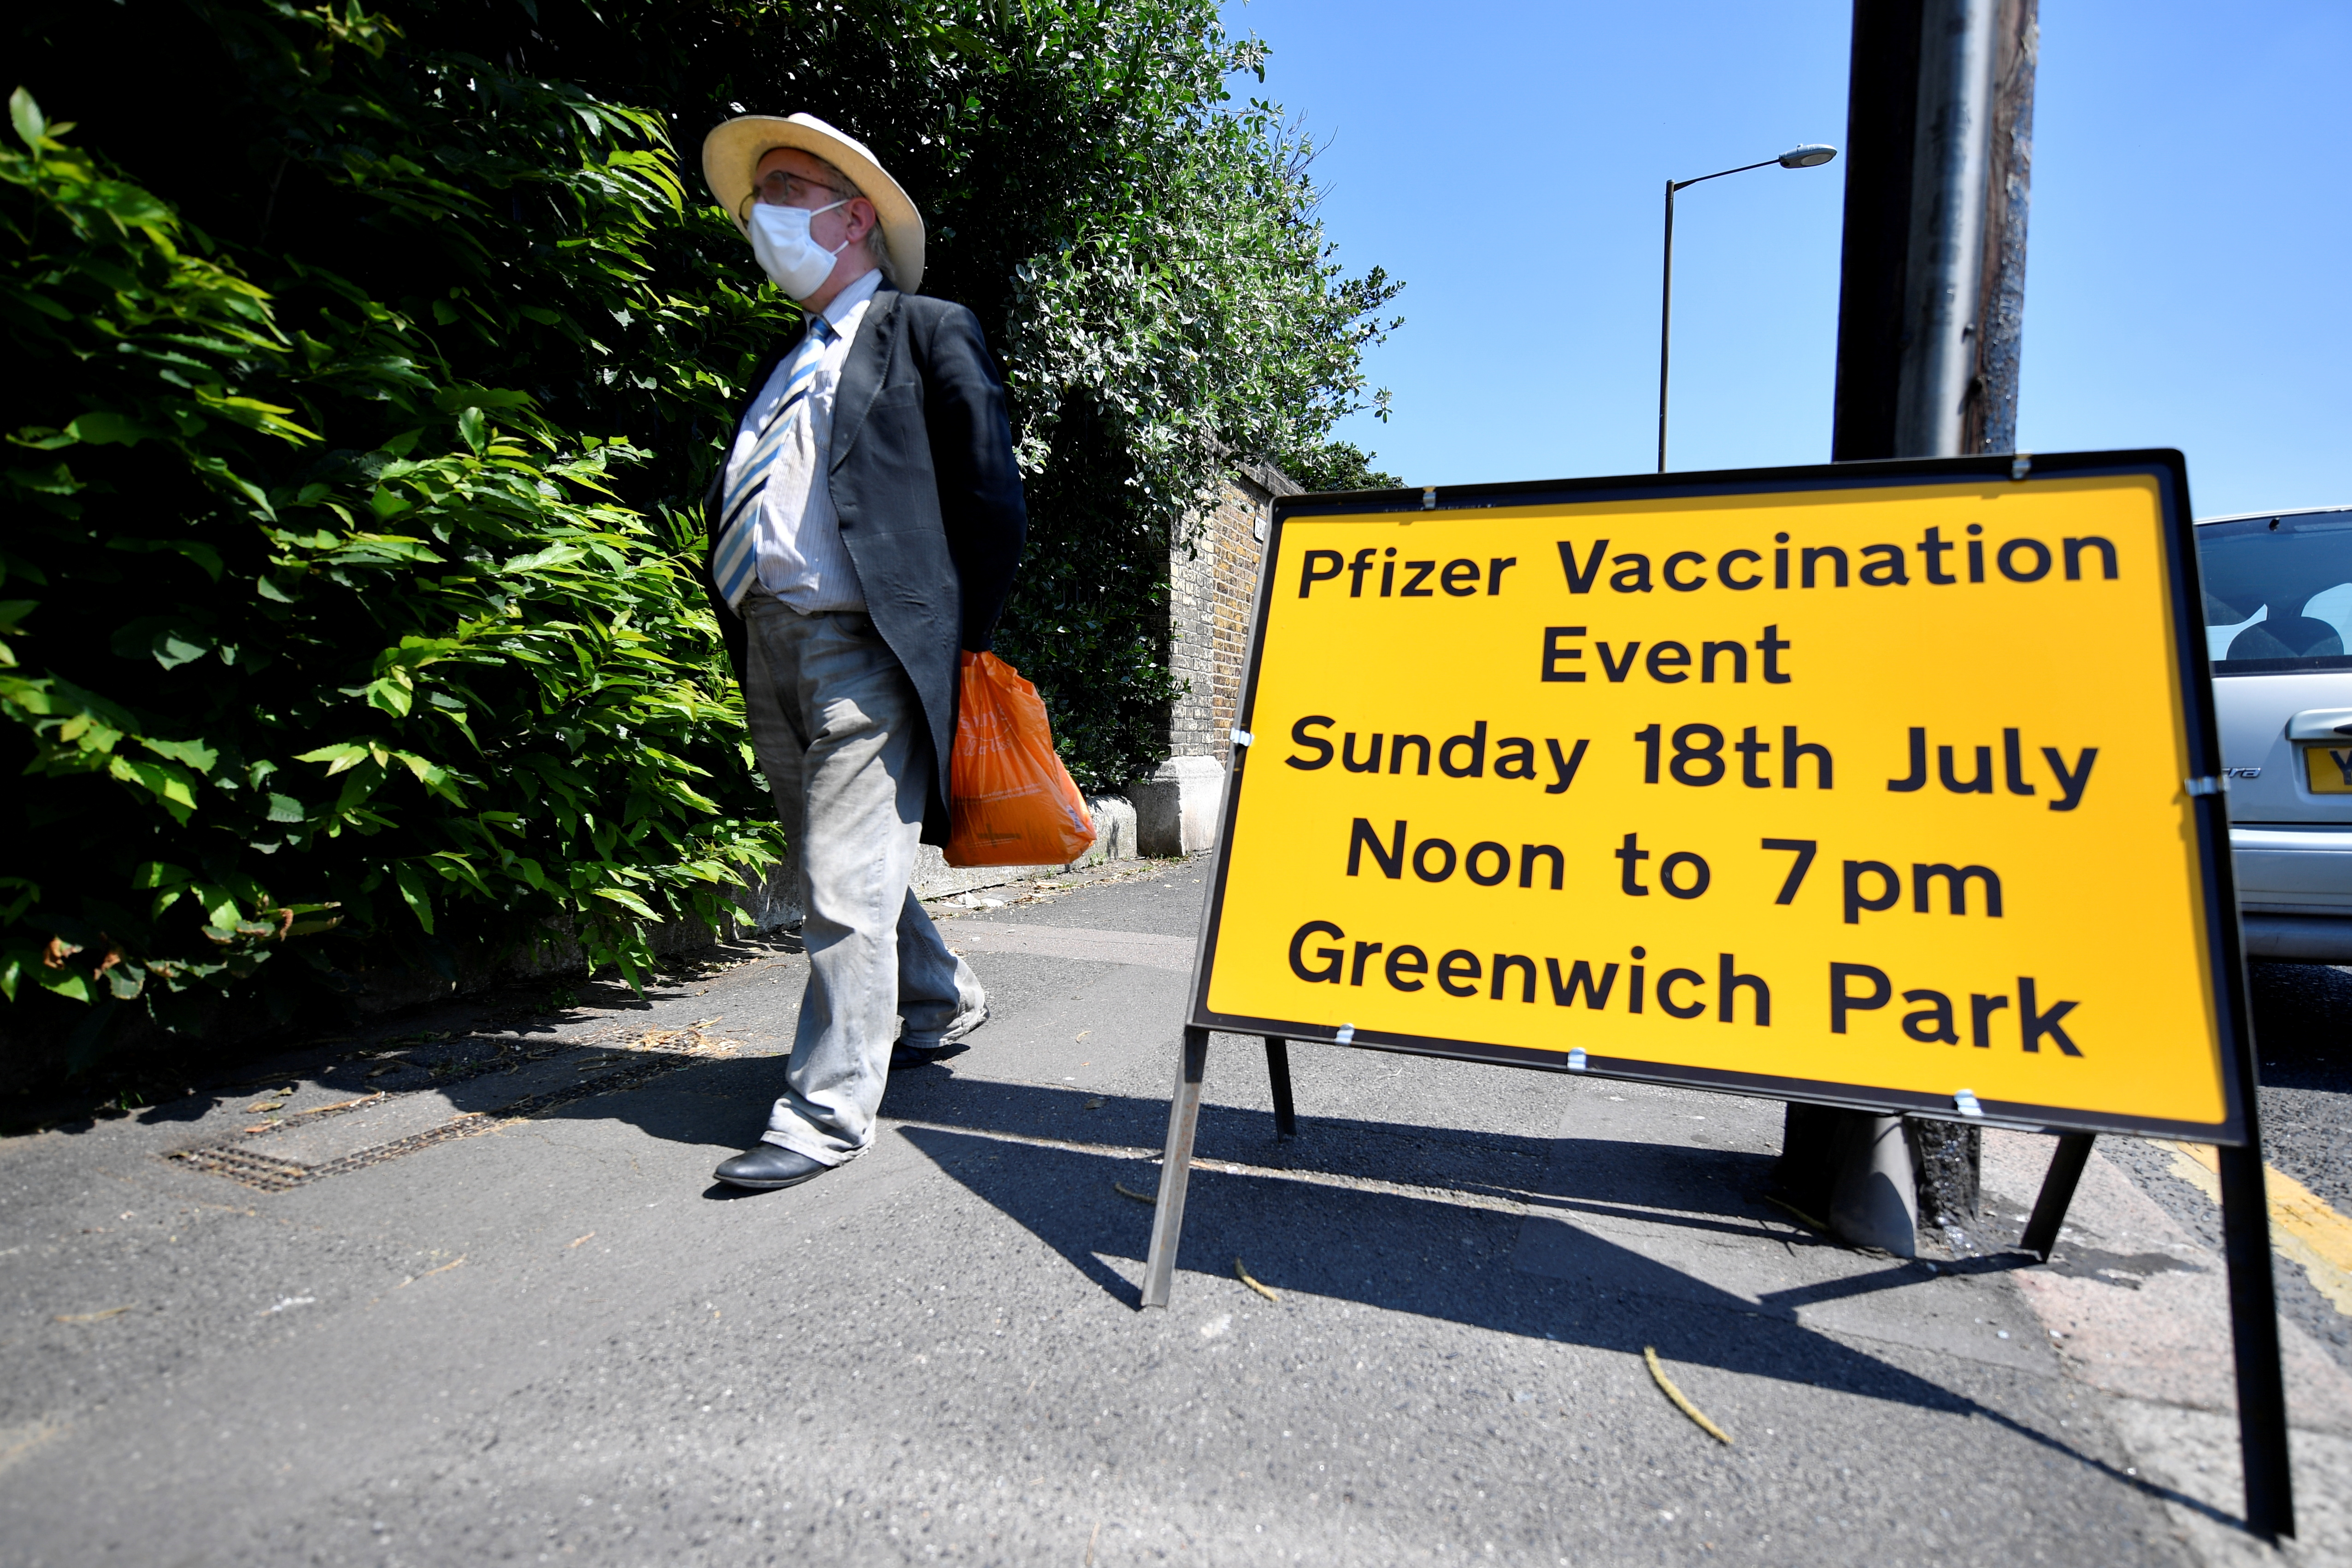 A person walks past a sign informing about a vaccination centre in Greenwich park, amid the coronavirus disease (COVID-19) outbreak, in London, Britain, July 18, 2021. REUTERS/Beresford Hodge